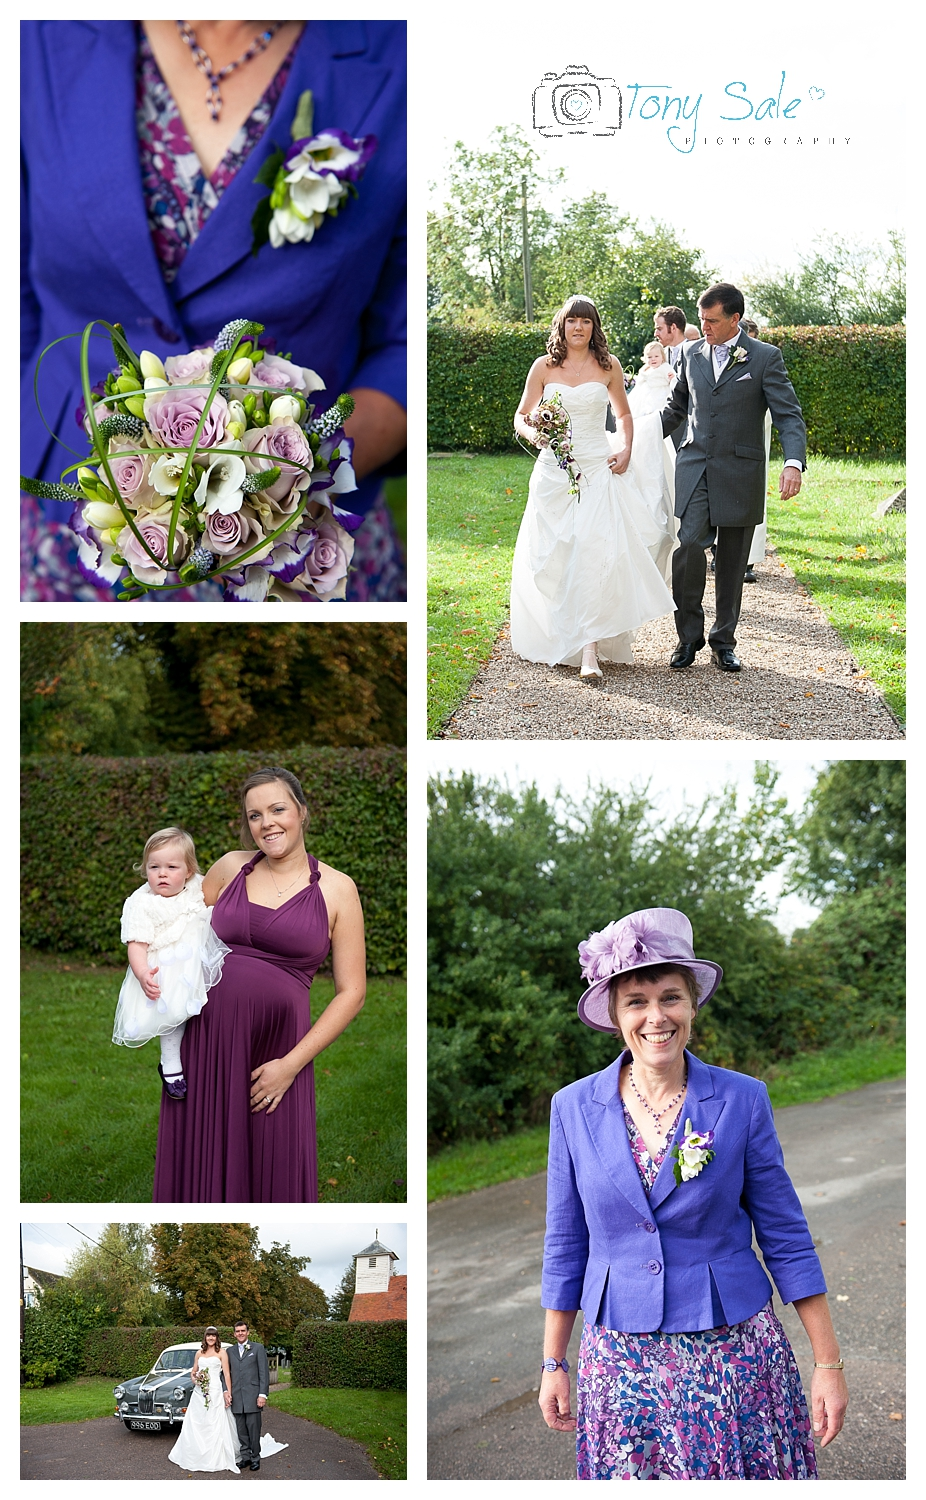 Wedding Photography Colchester_Tony Sale Photography_07